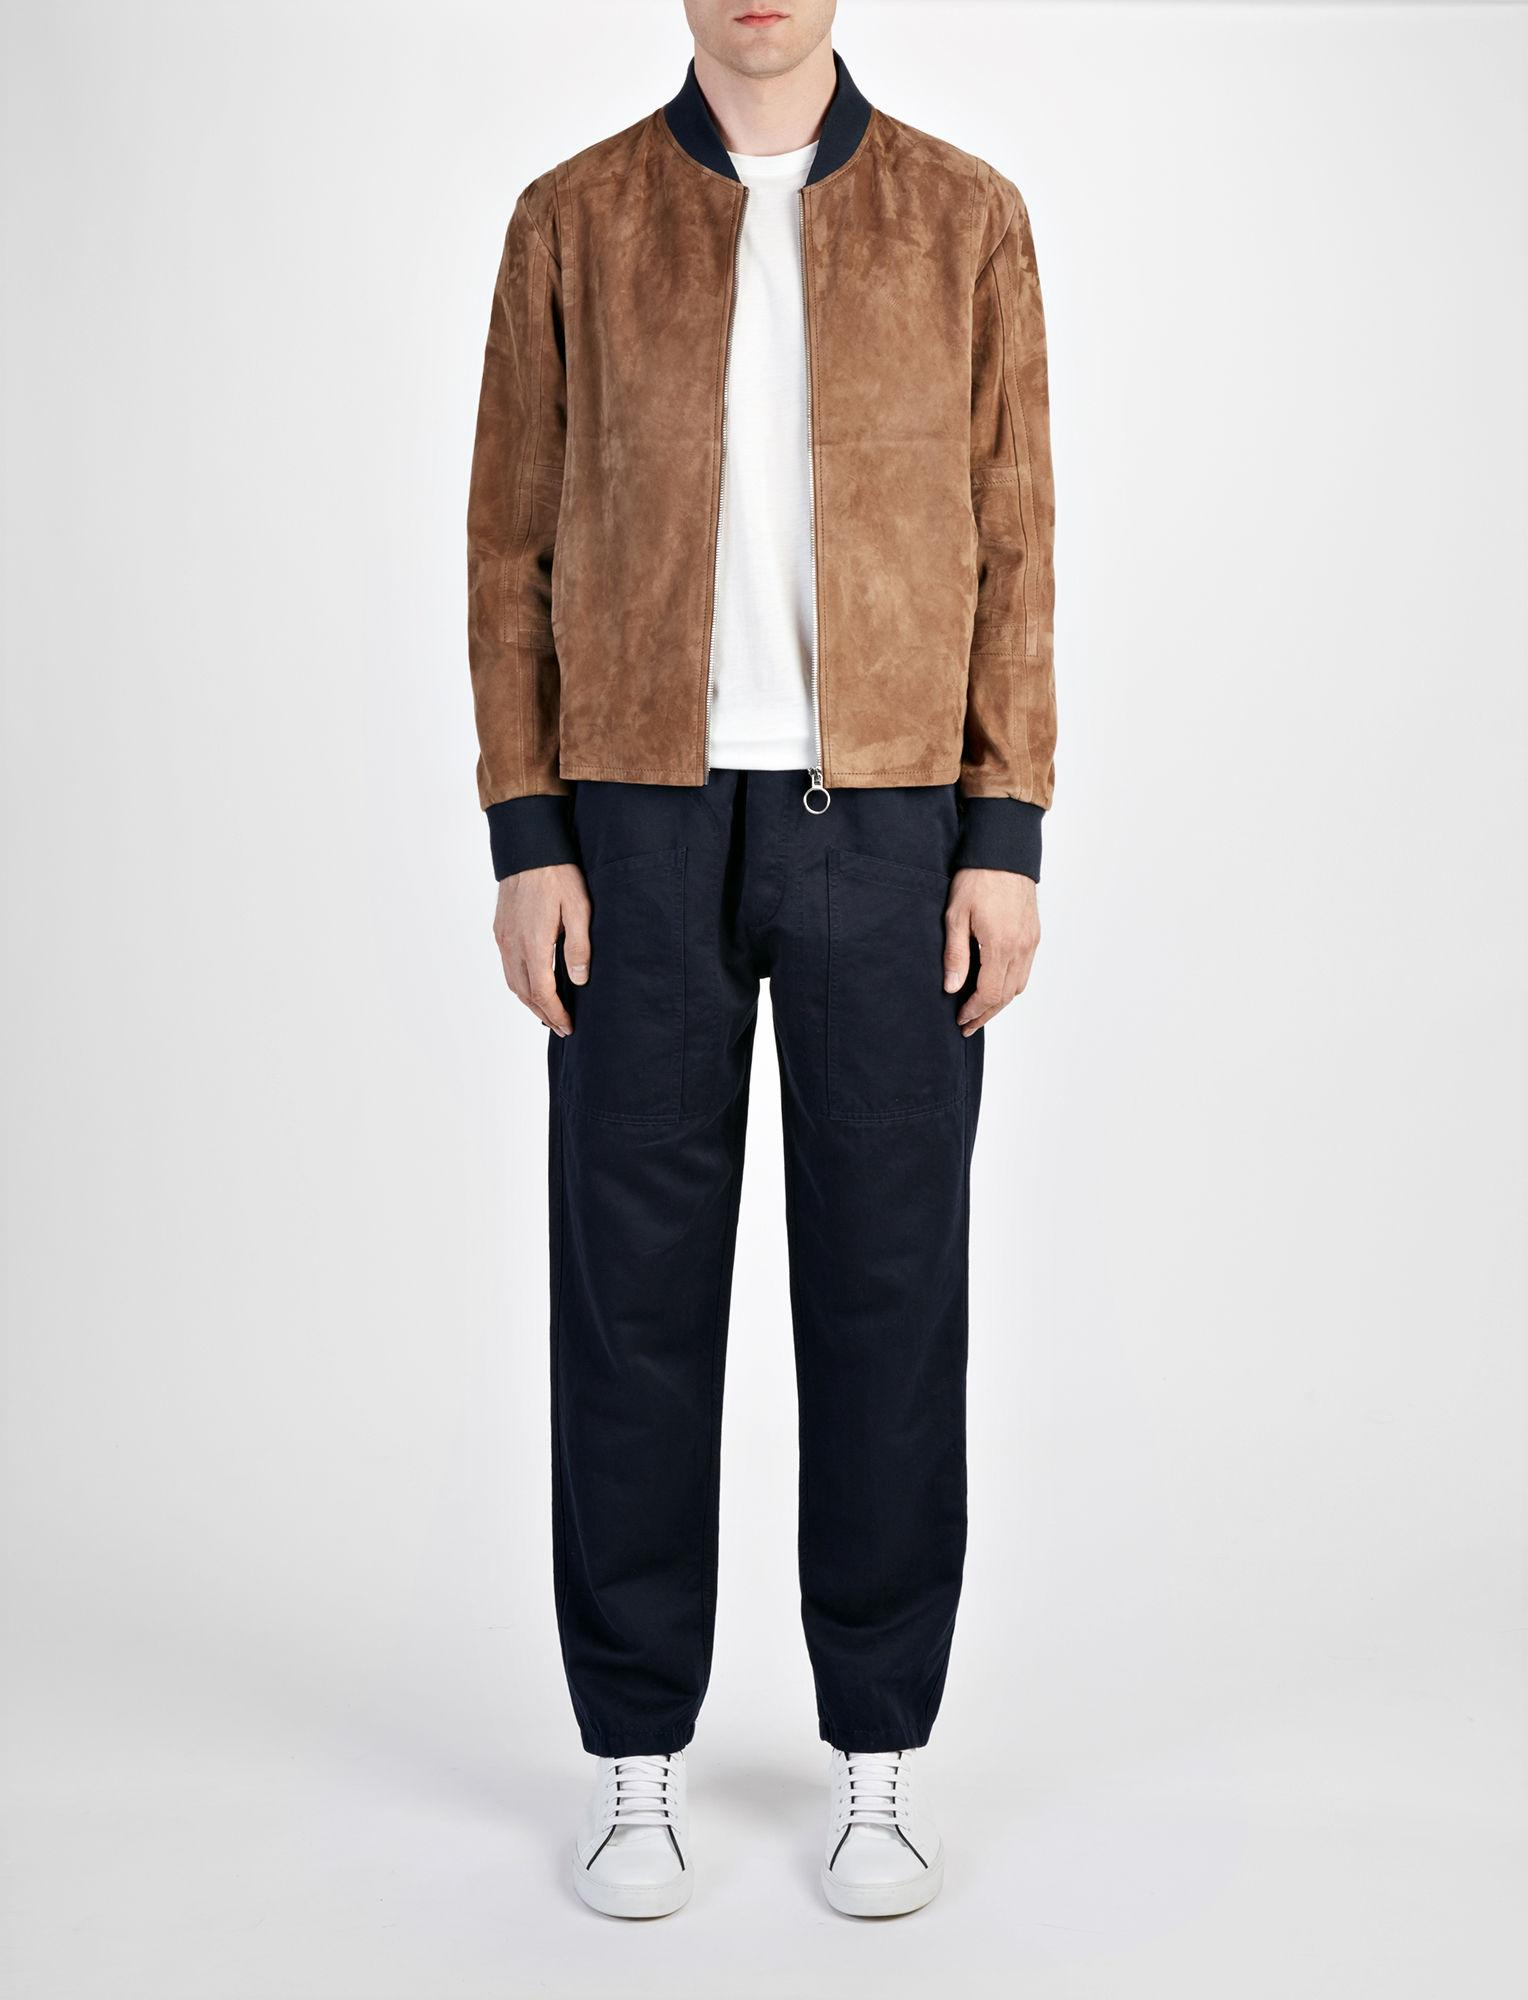 JOSEPH Cashmere Suede Kendal Jacket in Clay (Brown) for Men